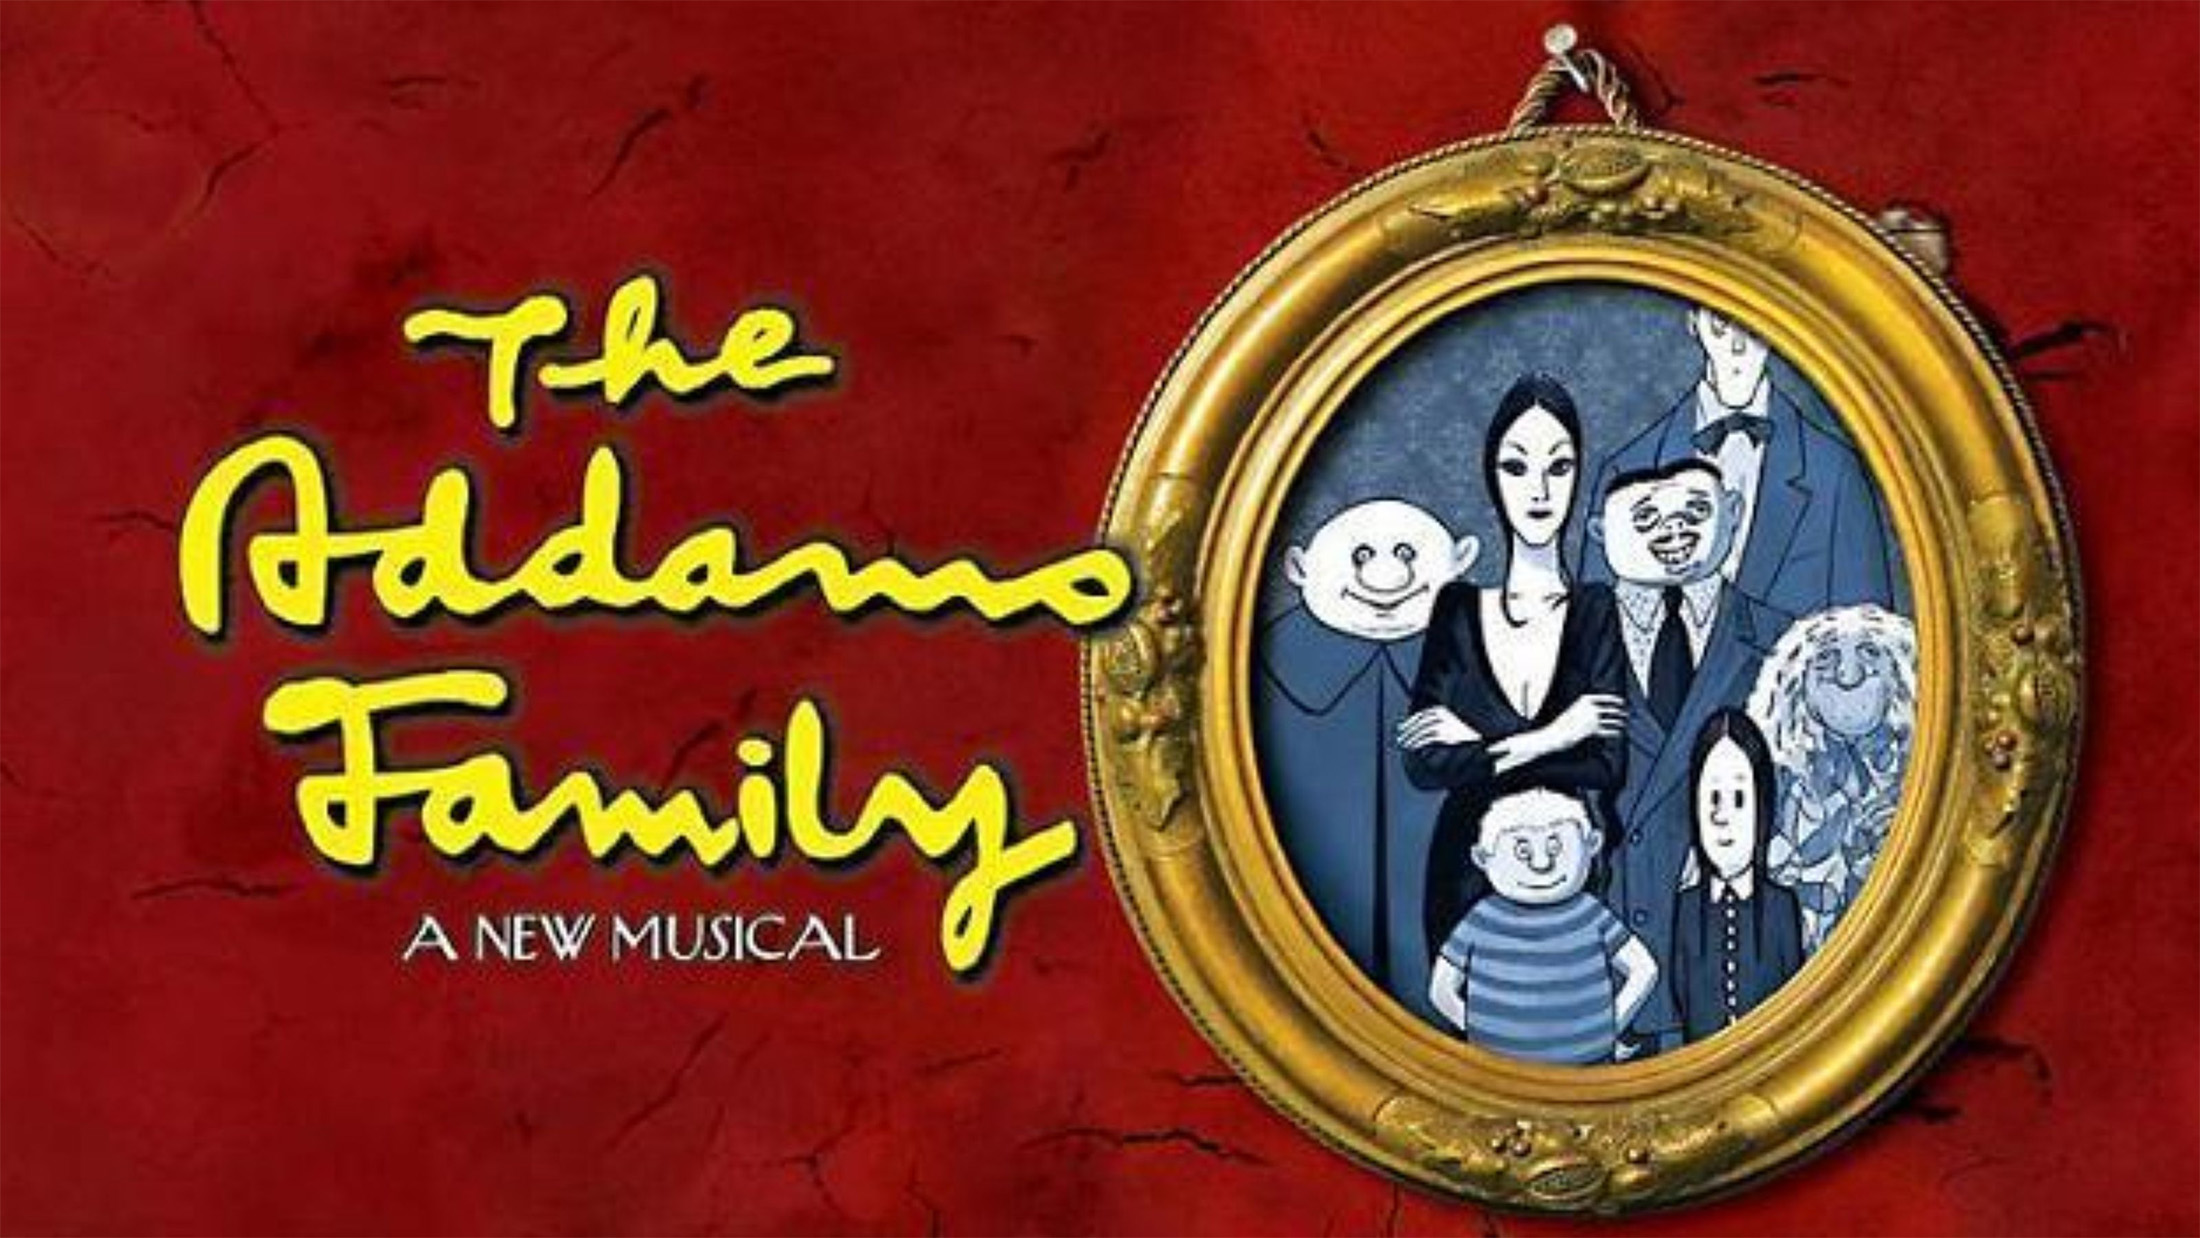 The show poster for the Addams Family Musical